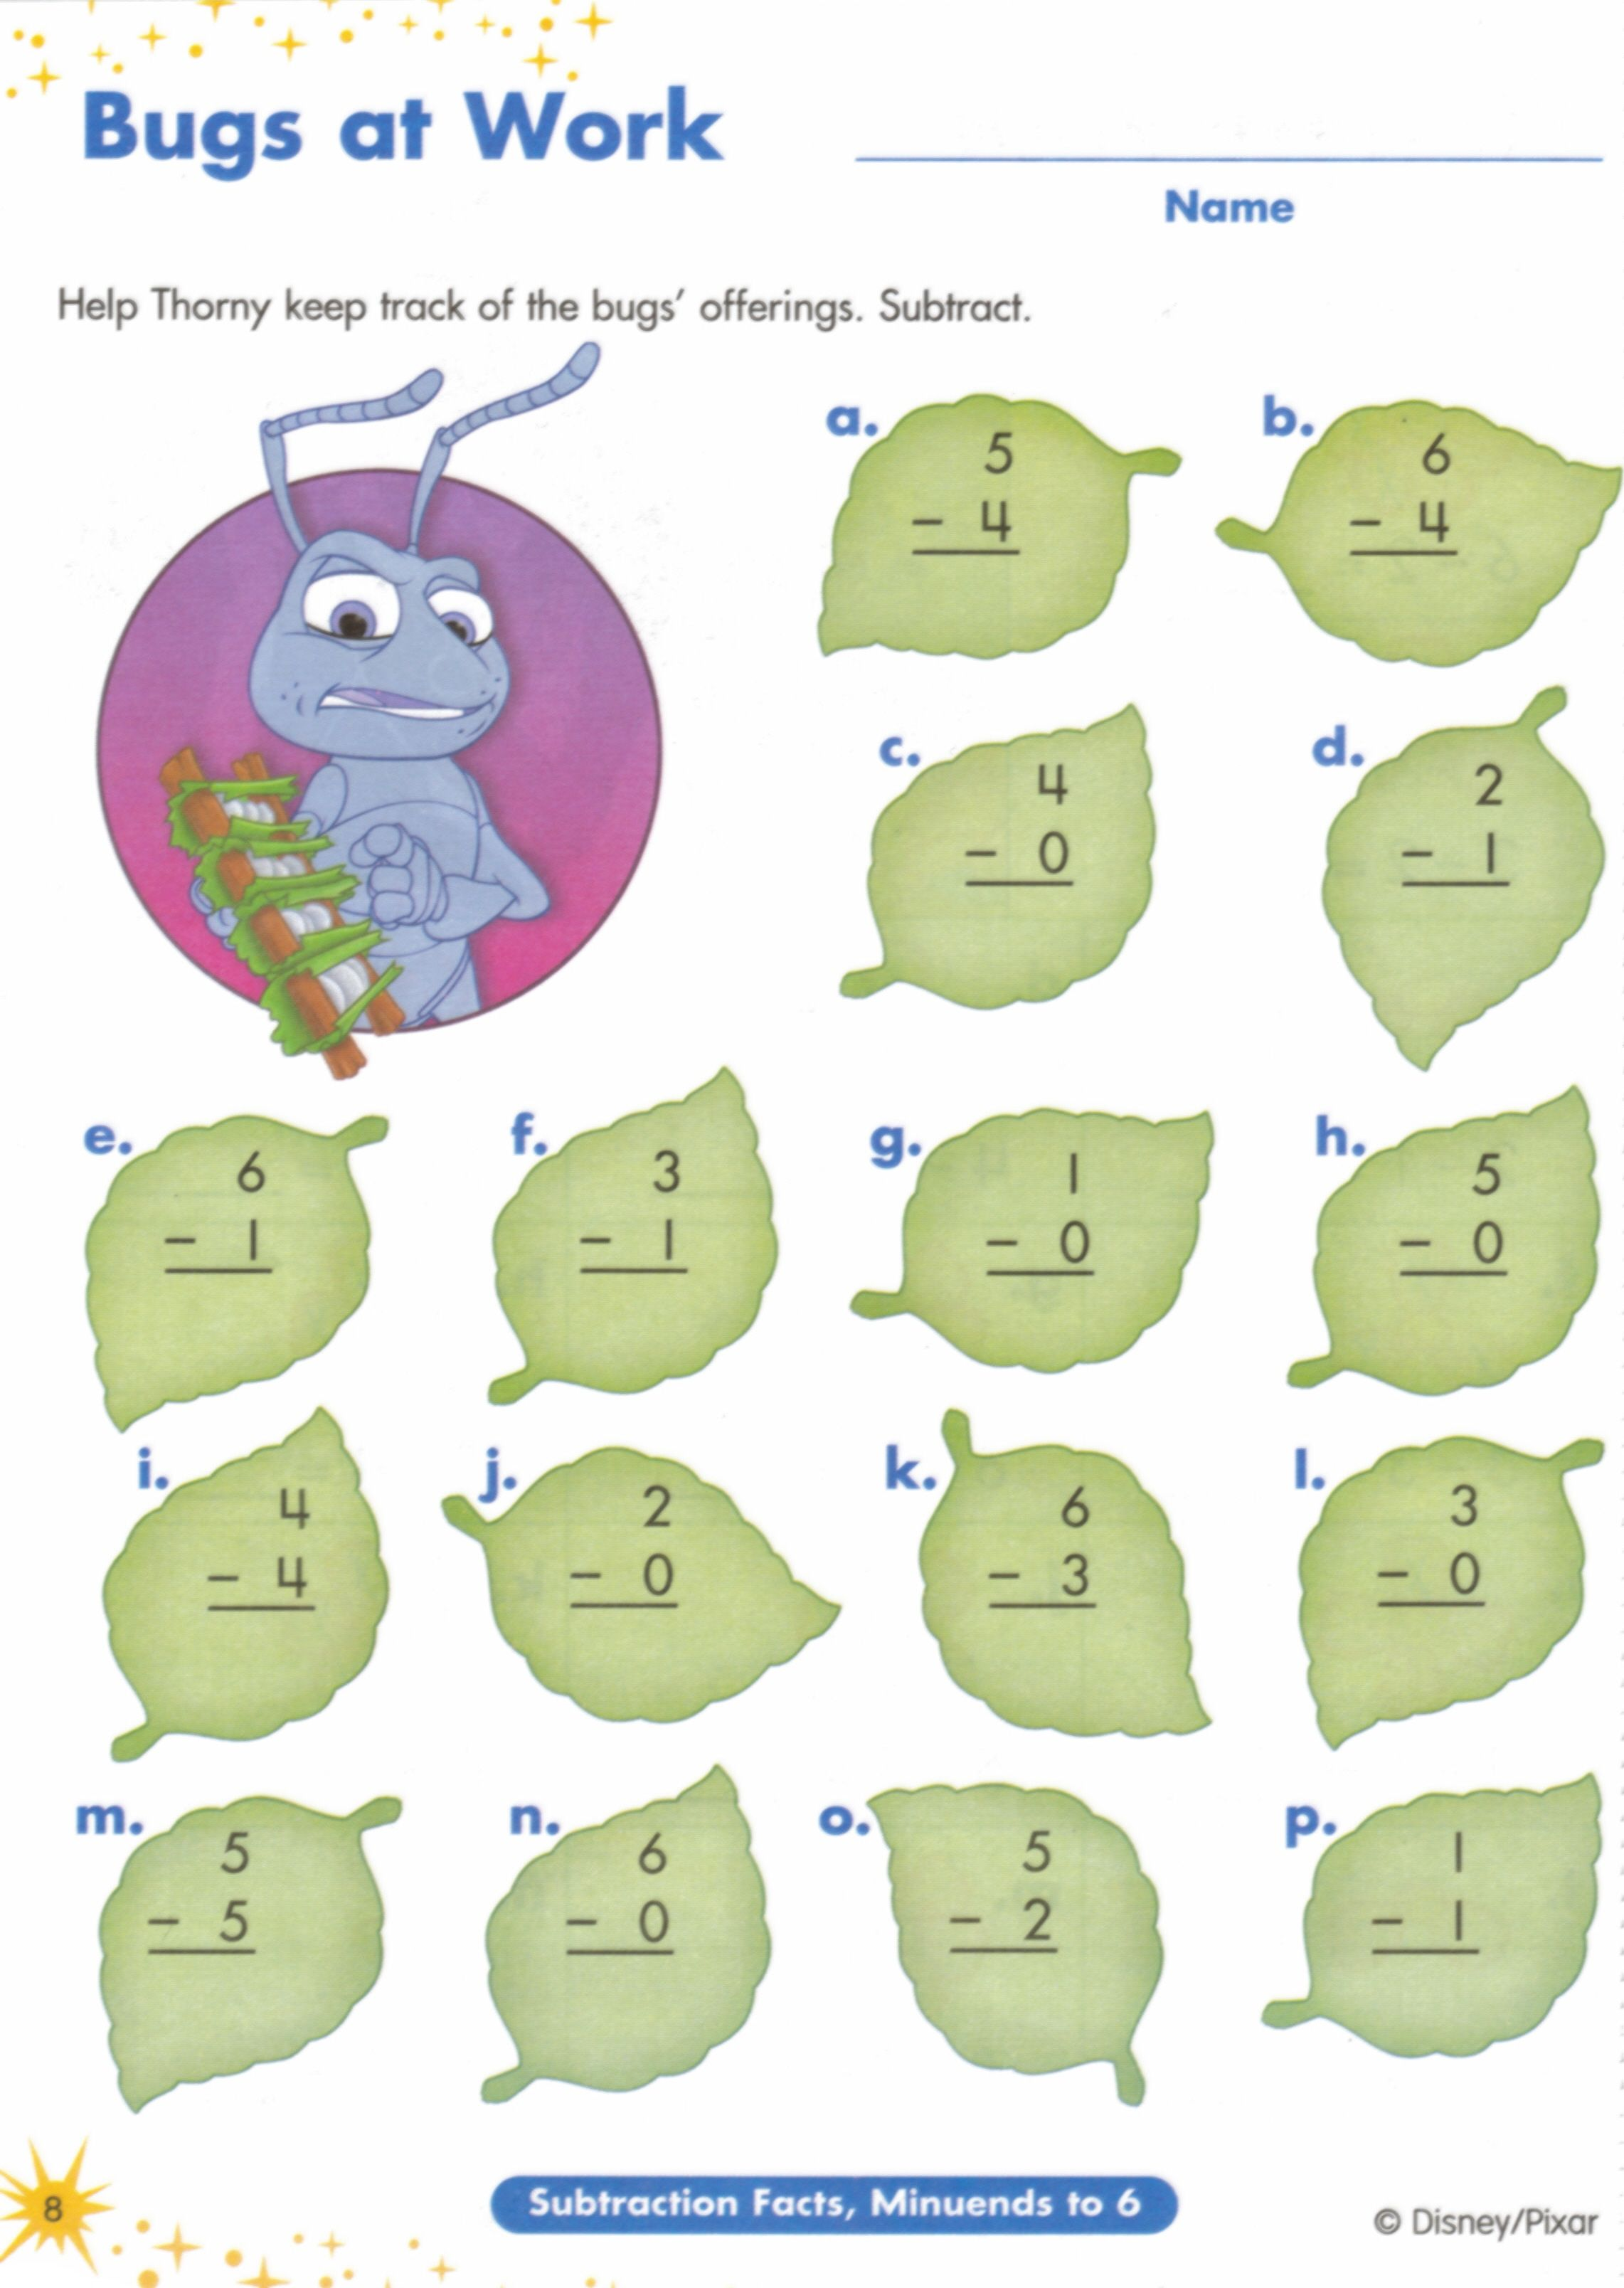 Proatmealus  Pleasant  Images About Worksheets On Pinterest  Fun Facts For Kids  With Licious  Images About Worksheets On Pinterest  Fun Facts For Kids Earth Day Worksheets And Jungles With Breathtaking Synonyms And Antonyms Context Clues Worksheets Also Multiplying Fraction Worksheets In Addition Linear And Nonlinear Functions Worksheet And Timeline Worksheets For St Grade As Well As Monohybrid Inheritance Worksheet Additionally Moon Phases Worksheets From Pinterestcom With Proatmealus  Licious  Images About Worksheets On Pinterest  Fun Facts For Kids  With Breathtaking  Images About Worksheets On Pinterest  Fun Facts For Kids Earth Day Worksheets And Jungles And Pleasant Synonyms And Antonyms Context Clues Worksheets Also Multiplying Fraction Worksheets In Addition Linear And Nonlinear Functions Worksheet From Pinterestcom